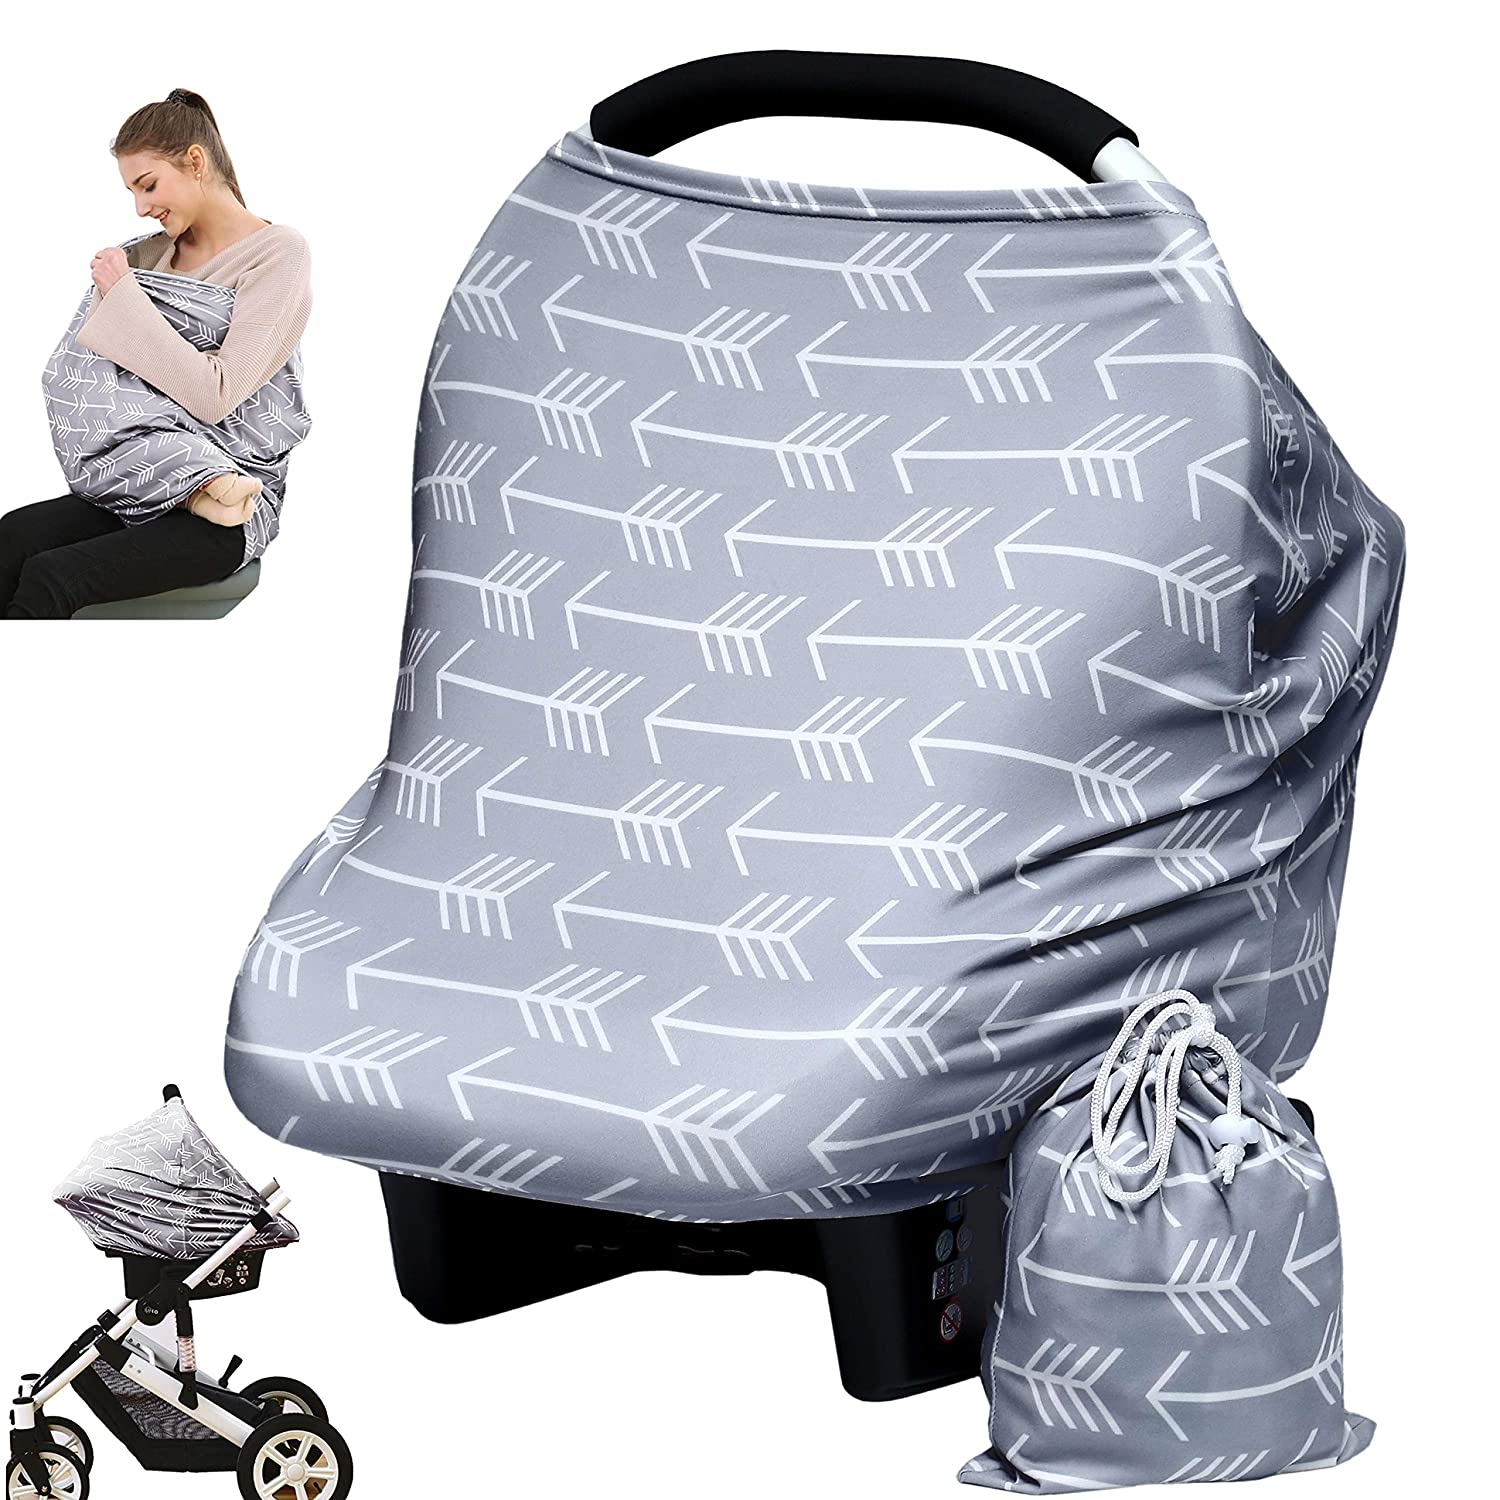 Baby Car Seat Cover canopy nursing and breastfeeding cover (arrows) Hicoco